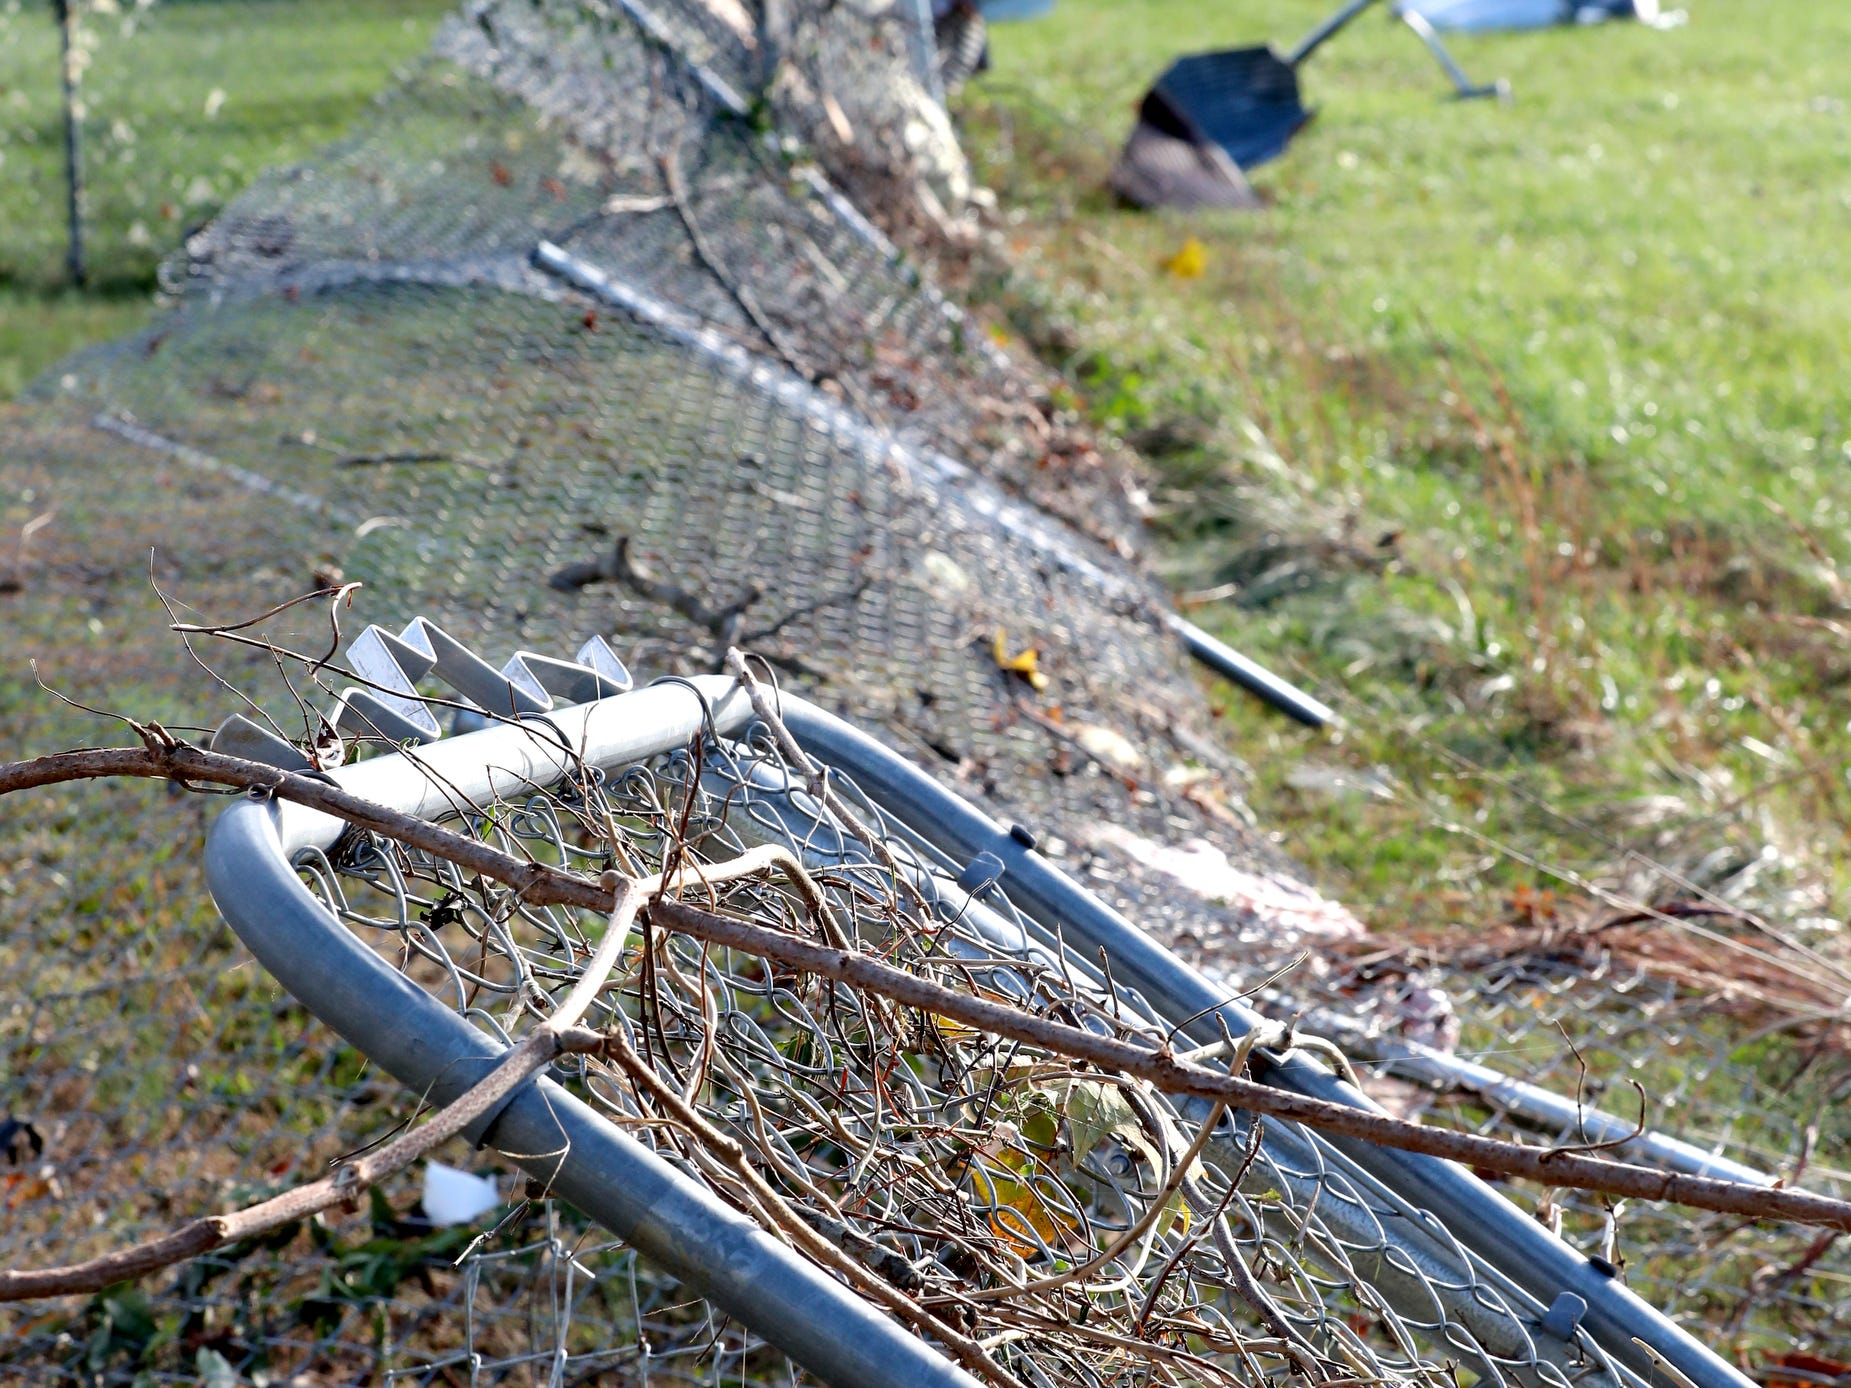 A chain link fence was knocked down by a tornado at the home of Hank and Ava Jordan, along Rock Springs Midland Road in Christiana, Tenn. on Tuesday, Nov. 6, 2018.